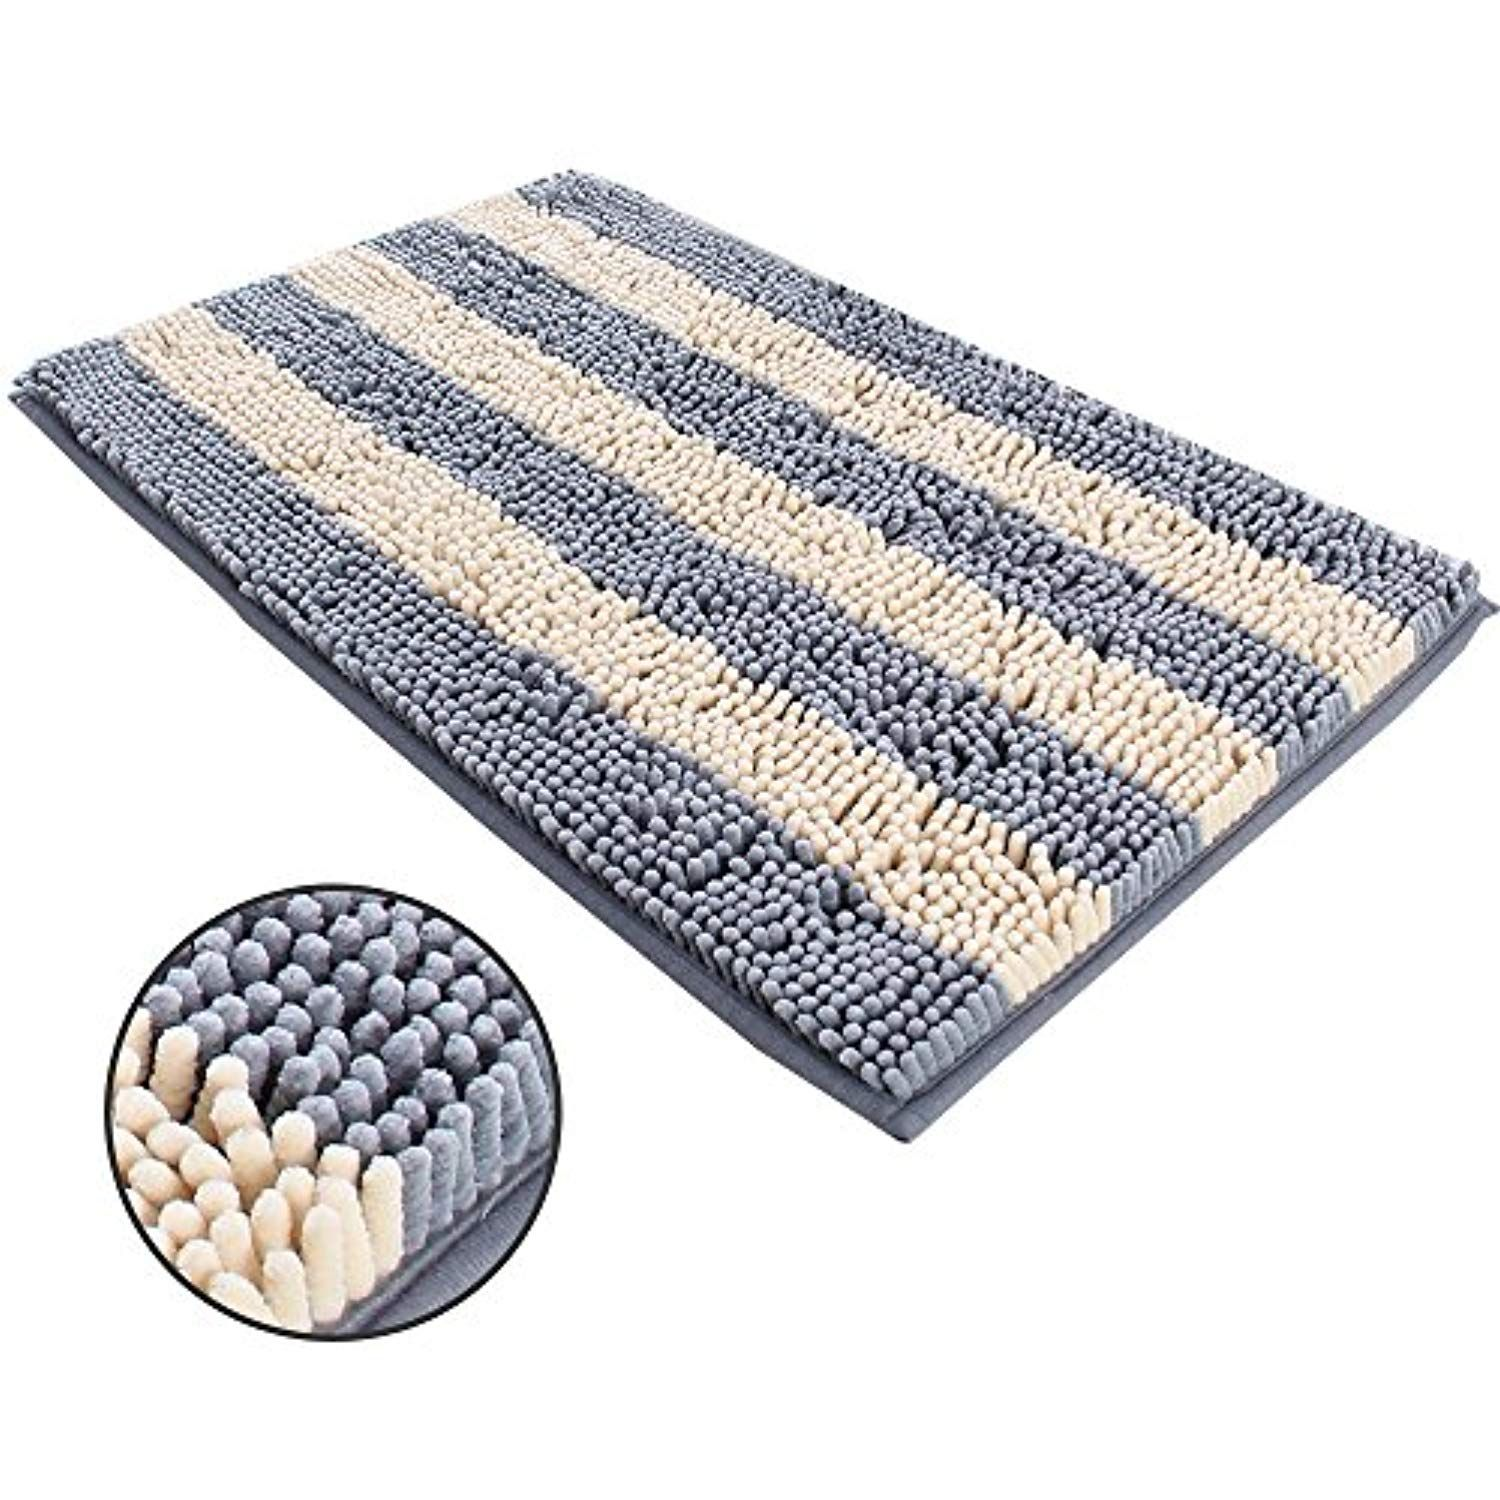 Ihoming Pet Mud Rugs Bowl Bed Mat Absorbent Microfiber Chenille